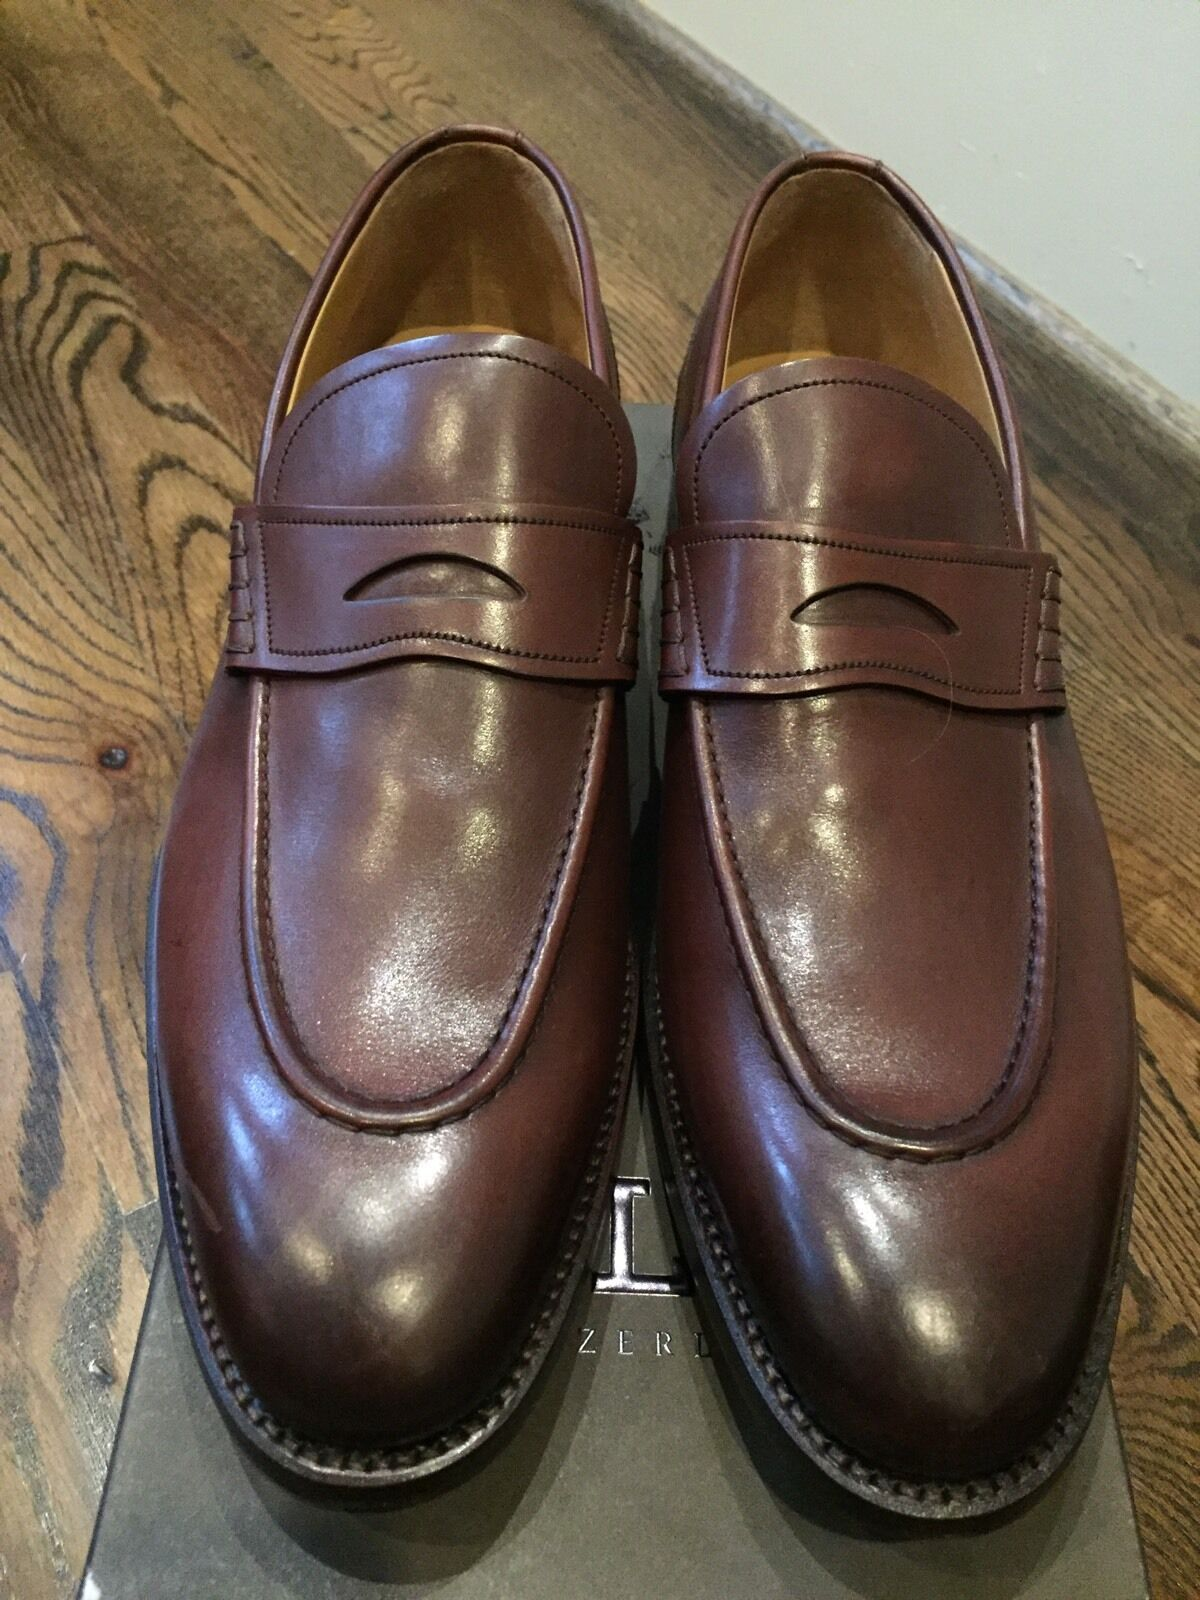 1,000  Bally US Brown Ayer Scribe Goodyear Welted Size US Bally 11.5 Made in Switzerland b227ab